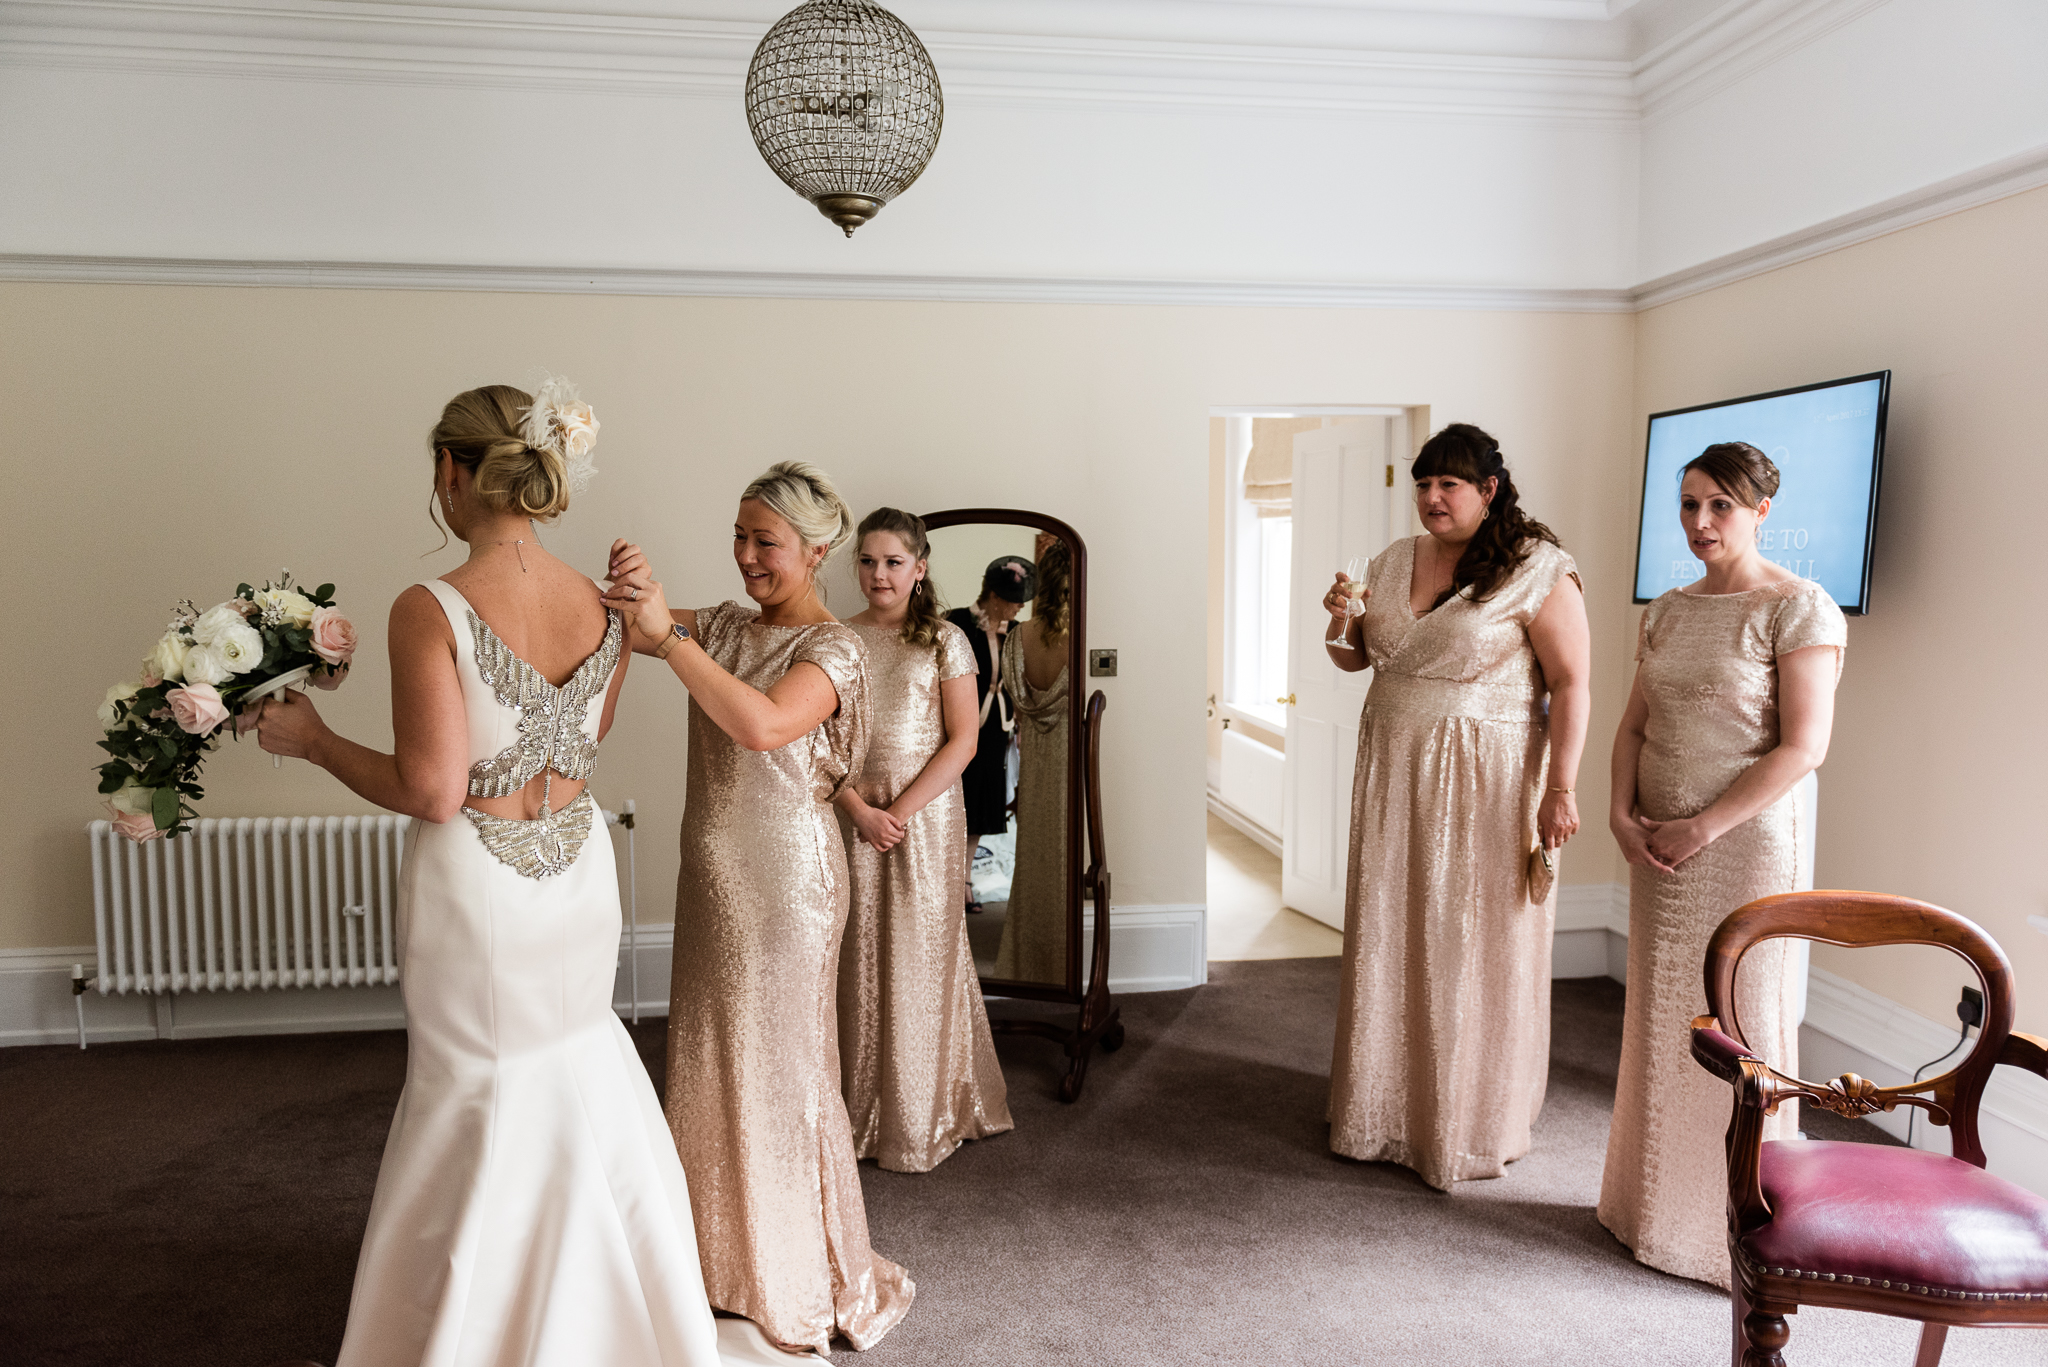 Stylish Easter Wedding at Pendrell Hall Country House Wedding Venue Staffordshire - Jenny Harper-21.jpg